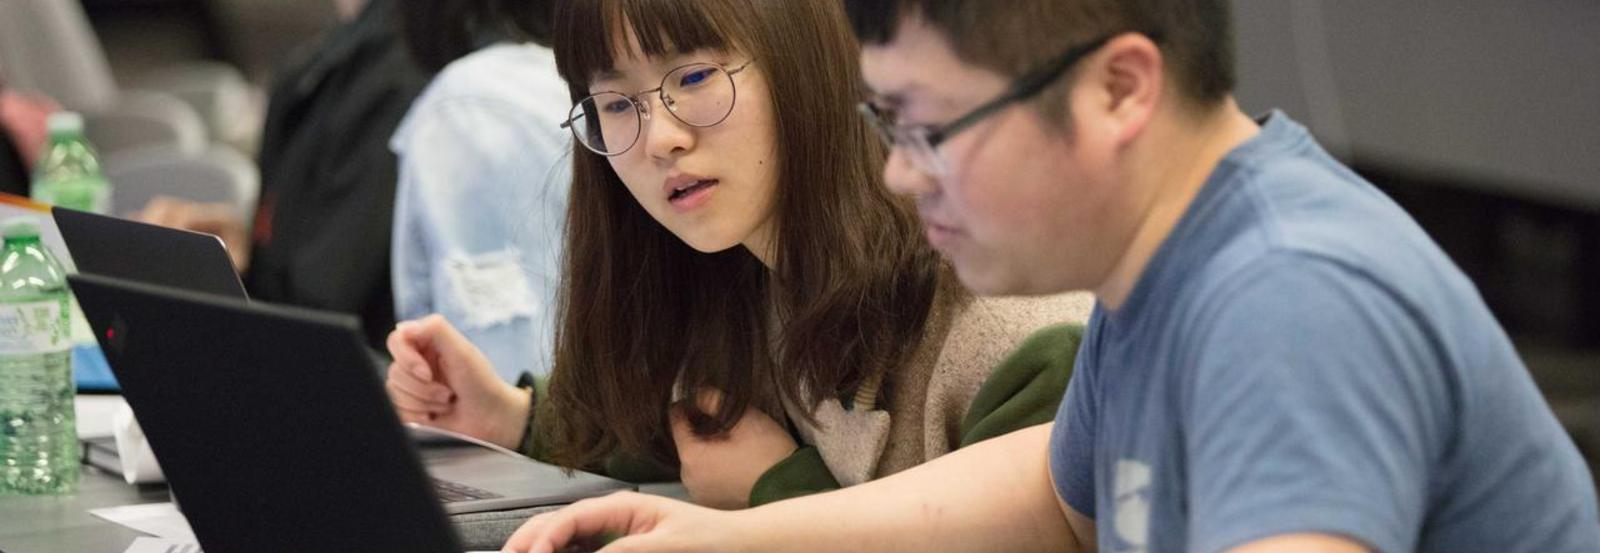 Datathon participants hack data during weekend competition